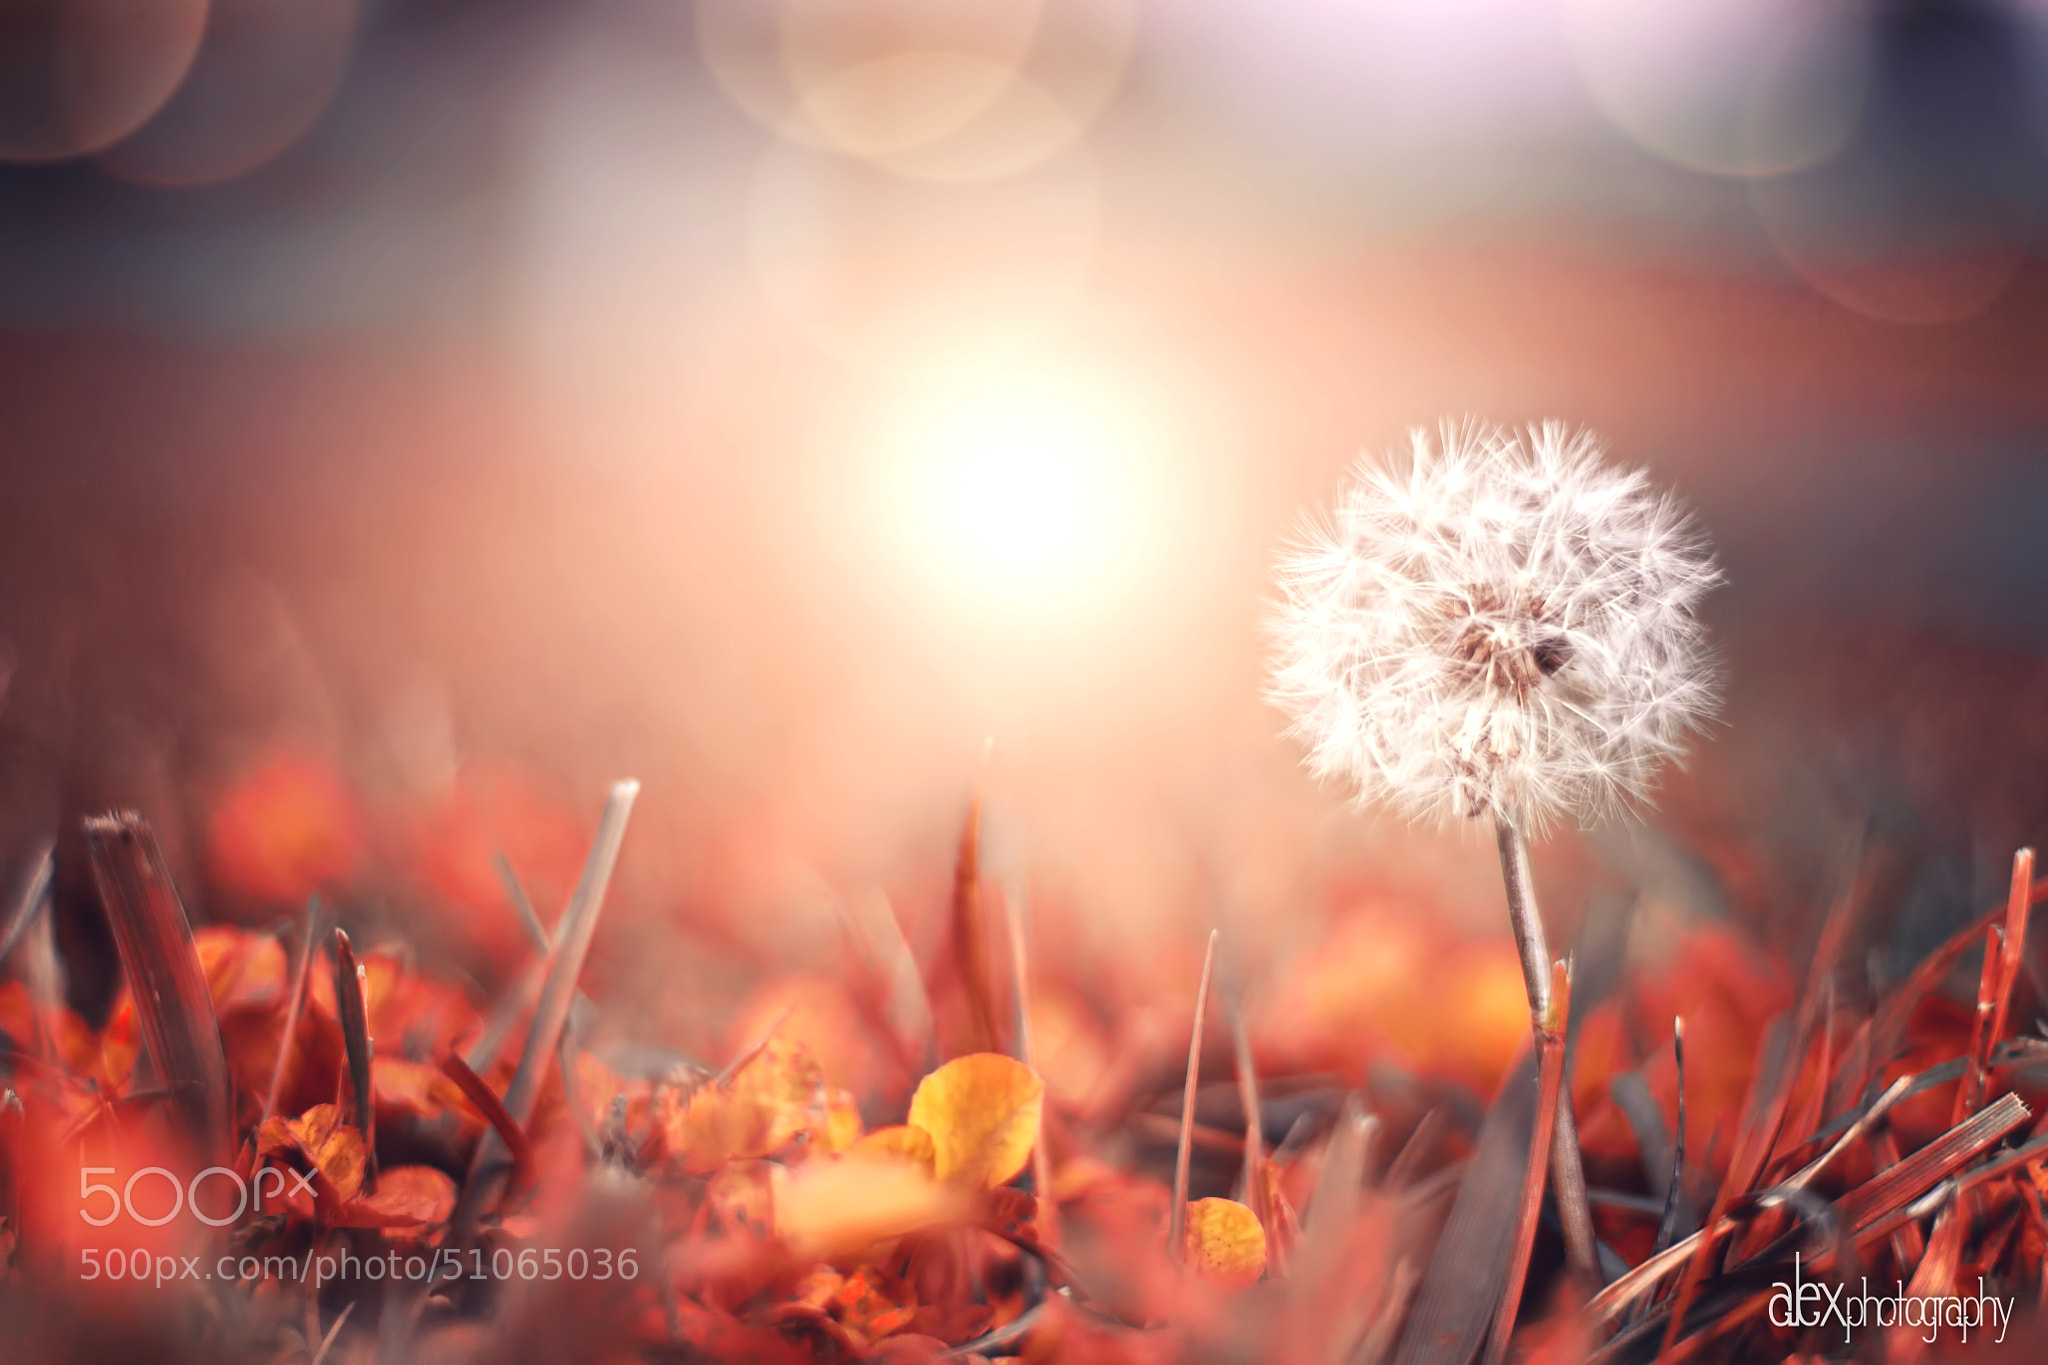 Photograph The last dandelion standing by Alex Kie on 500px